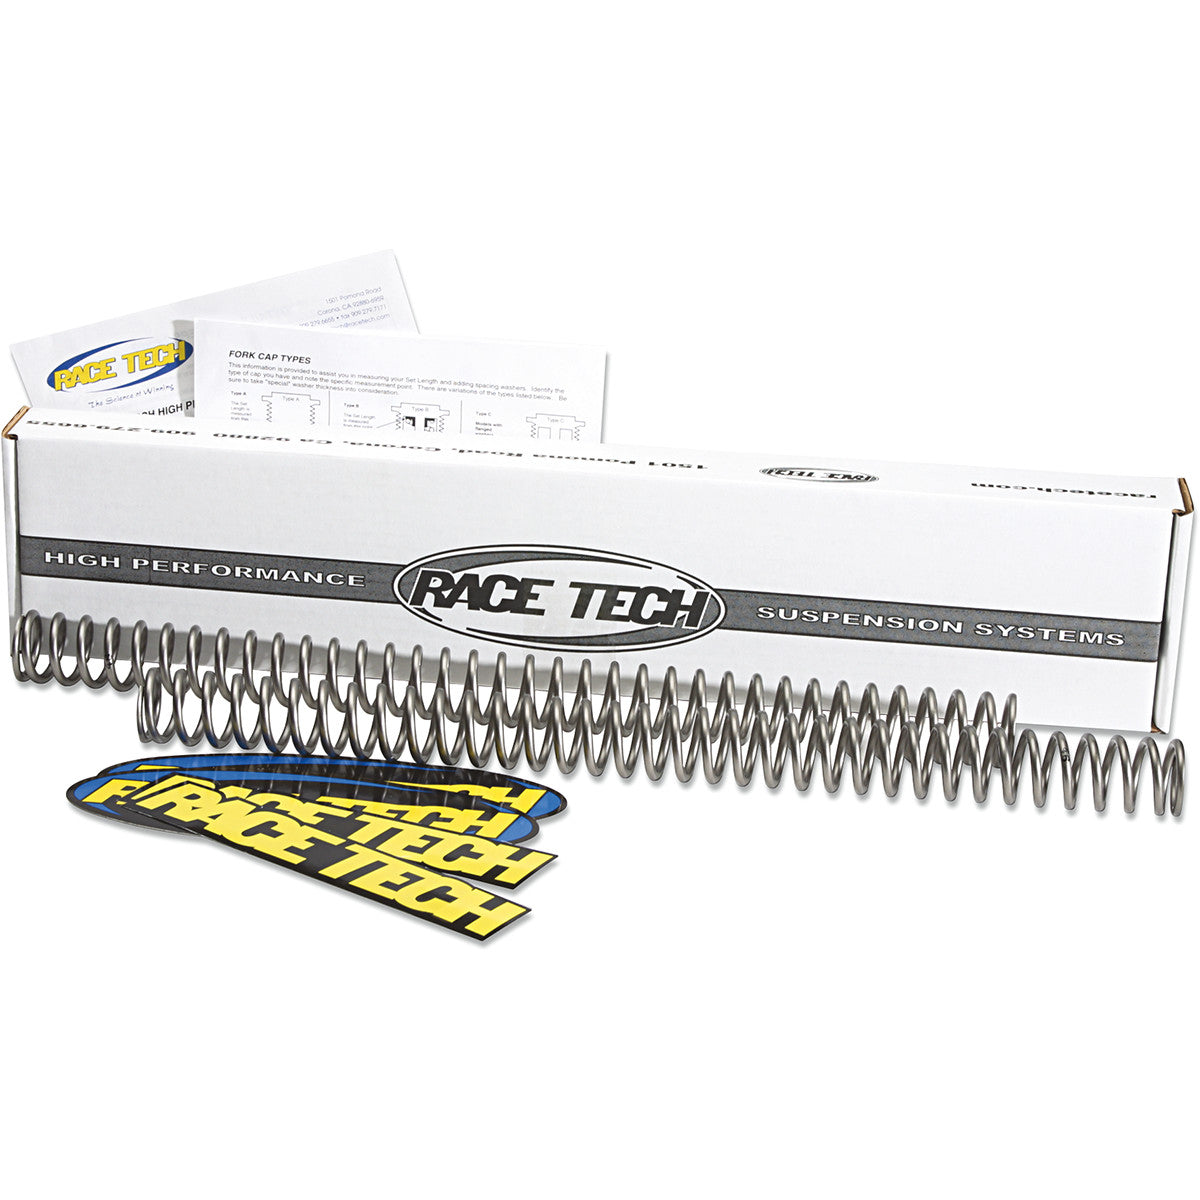 FRSPS382785 RACE TECH Fork Springs .85 KG/MM FORK SPRINGS